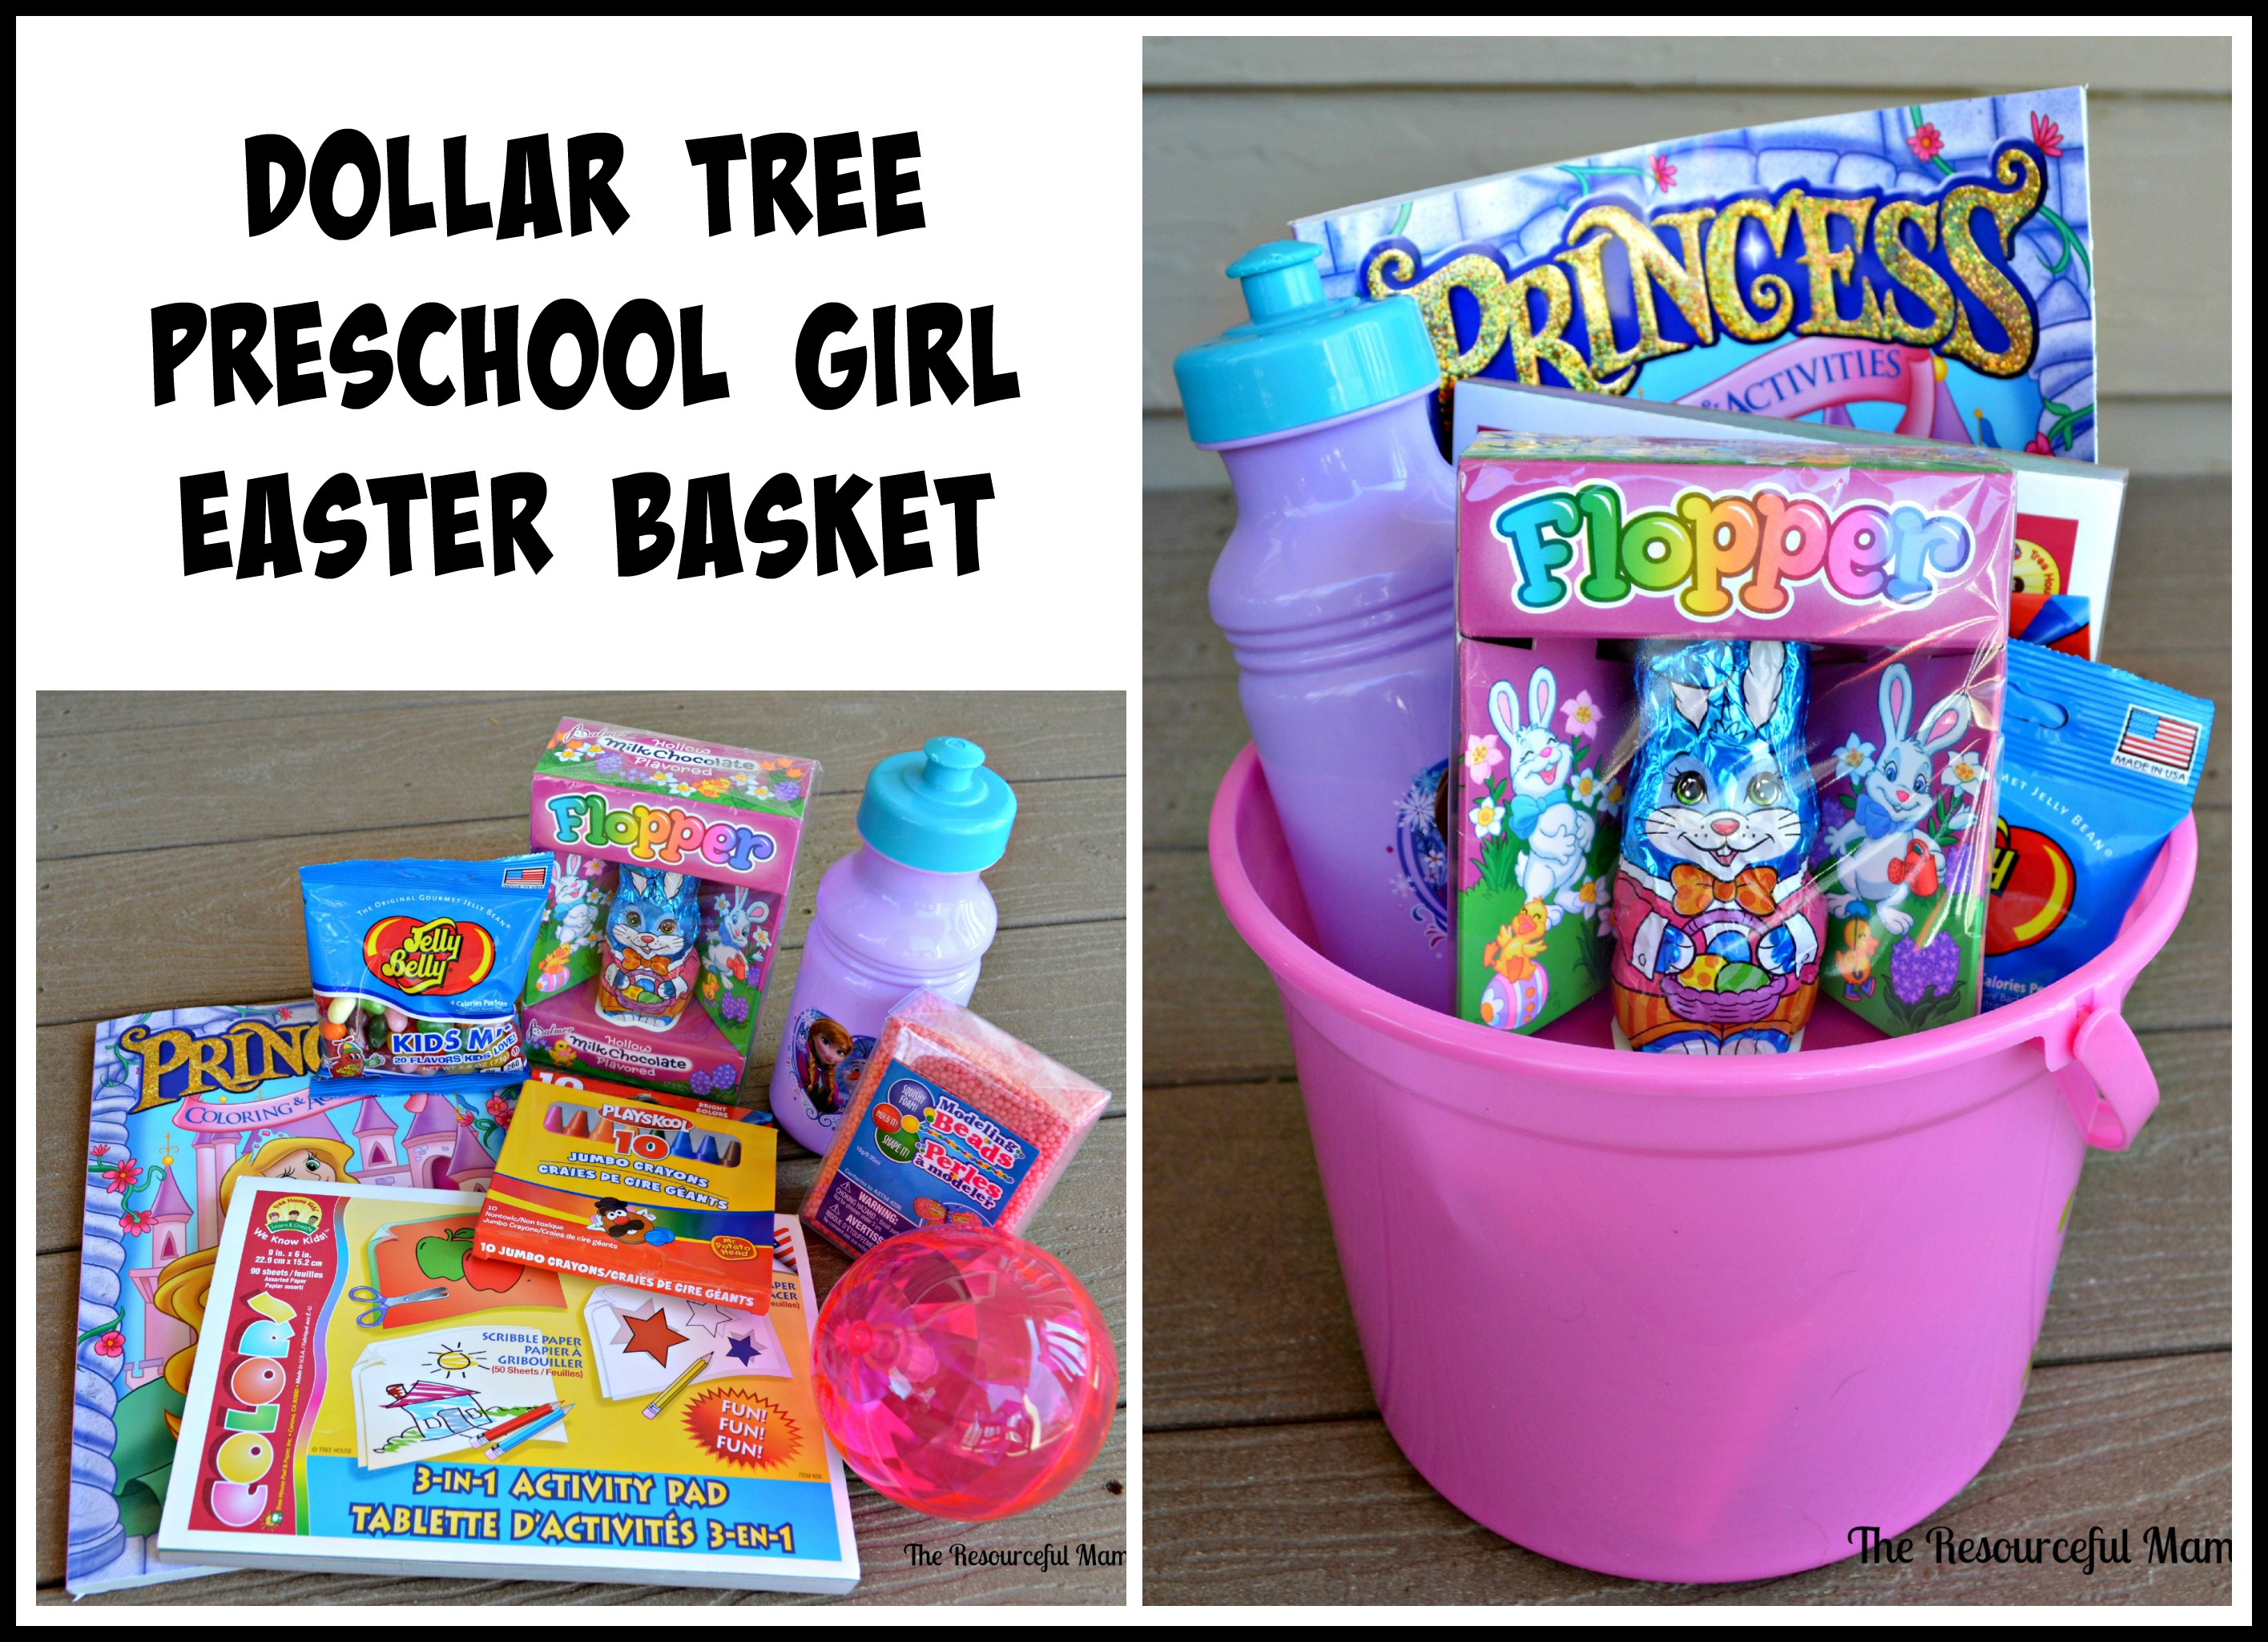 Dollar tree easter baskets the resourceful mama dollar tree preschool girl easter basket negle Choice Image